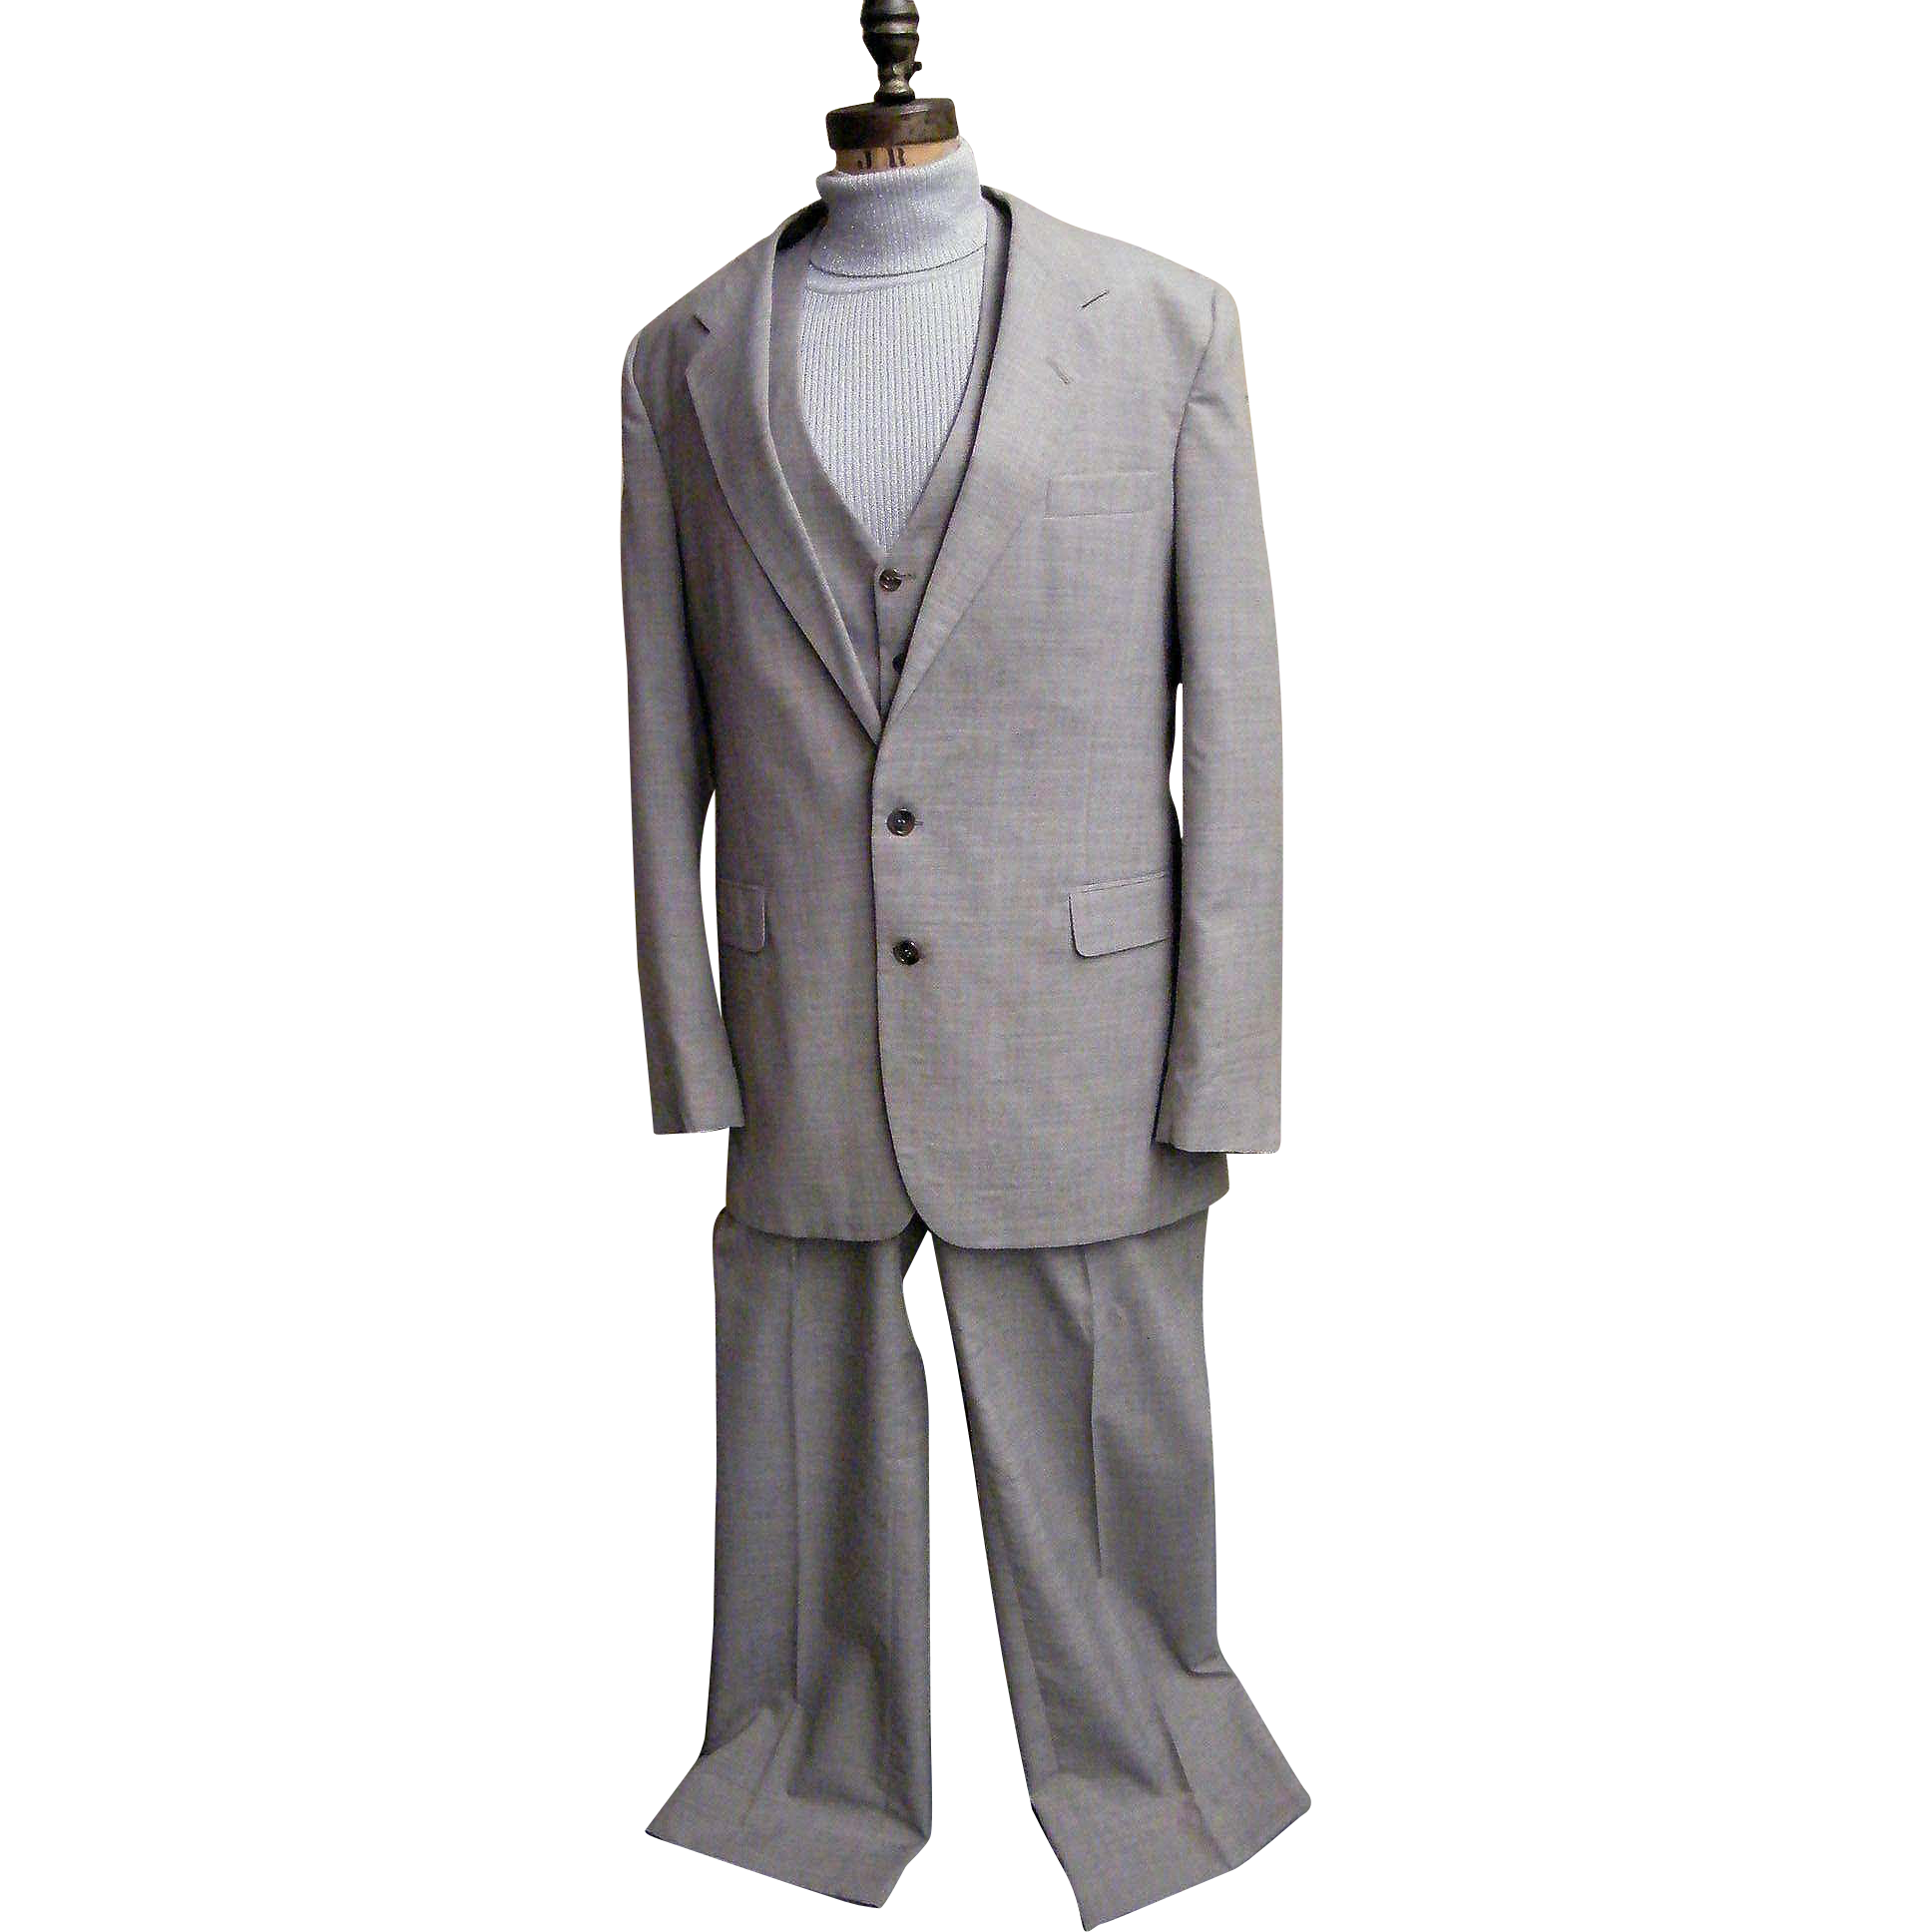 Men's 3 Piece Wool / Polyester Woven Suit..Light Beige Ground With Pale Blue Fine Line Tattersol Checks In Pale Turquoise & Wine...NWT..Sergio Valente..Size 46L..1970's